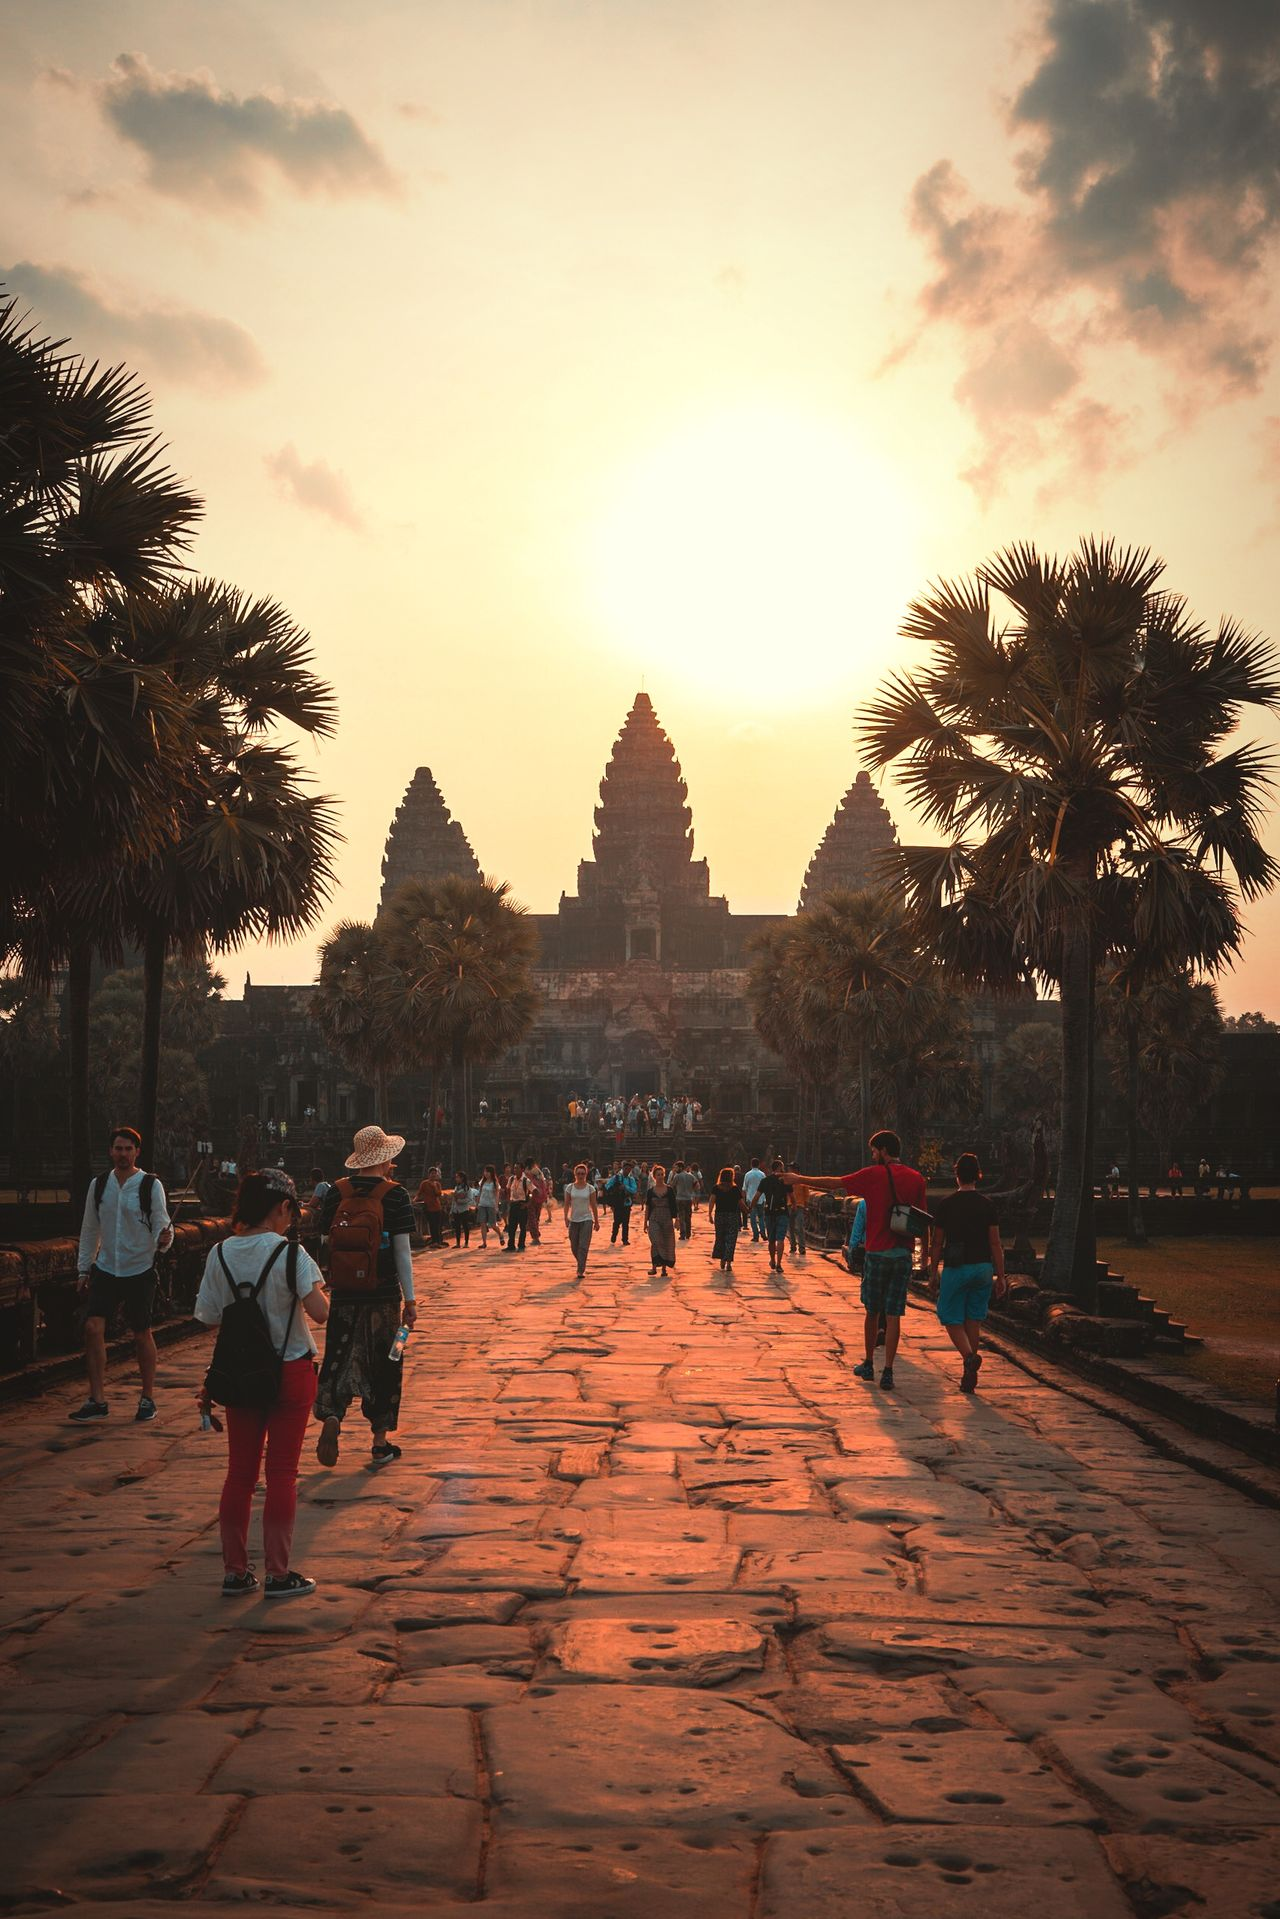 No wonder it's a Wonder of the World Travel Destinations Large Group Of People Religion Tourism History Sunrise Travel Built Structure Architecture Full Length People Sky Dawn Outdoors Building Exterior Travel Photography Showcase: April ASIA Cambodia Angkor Wat